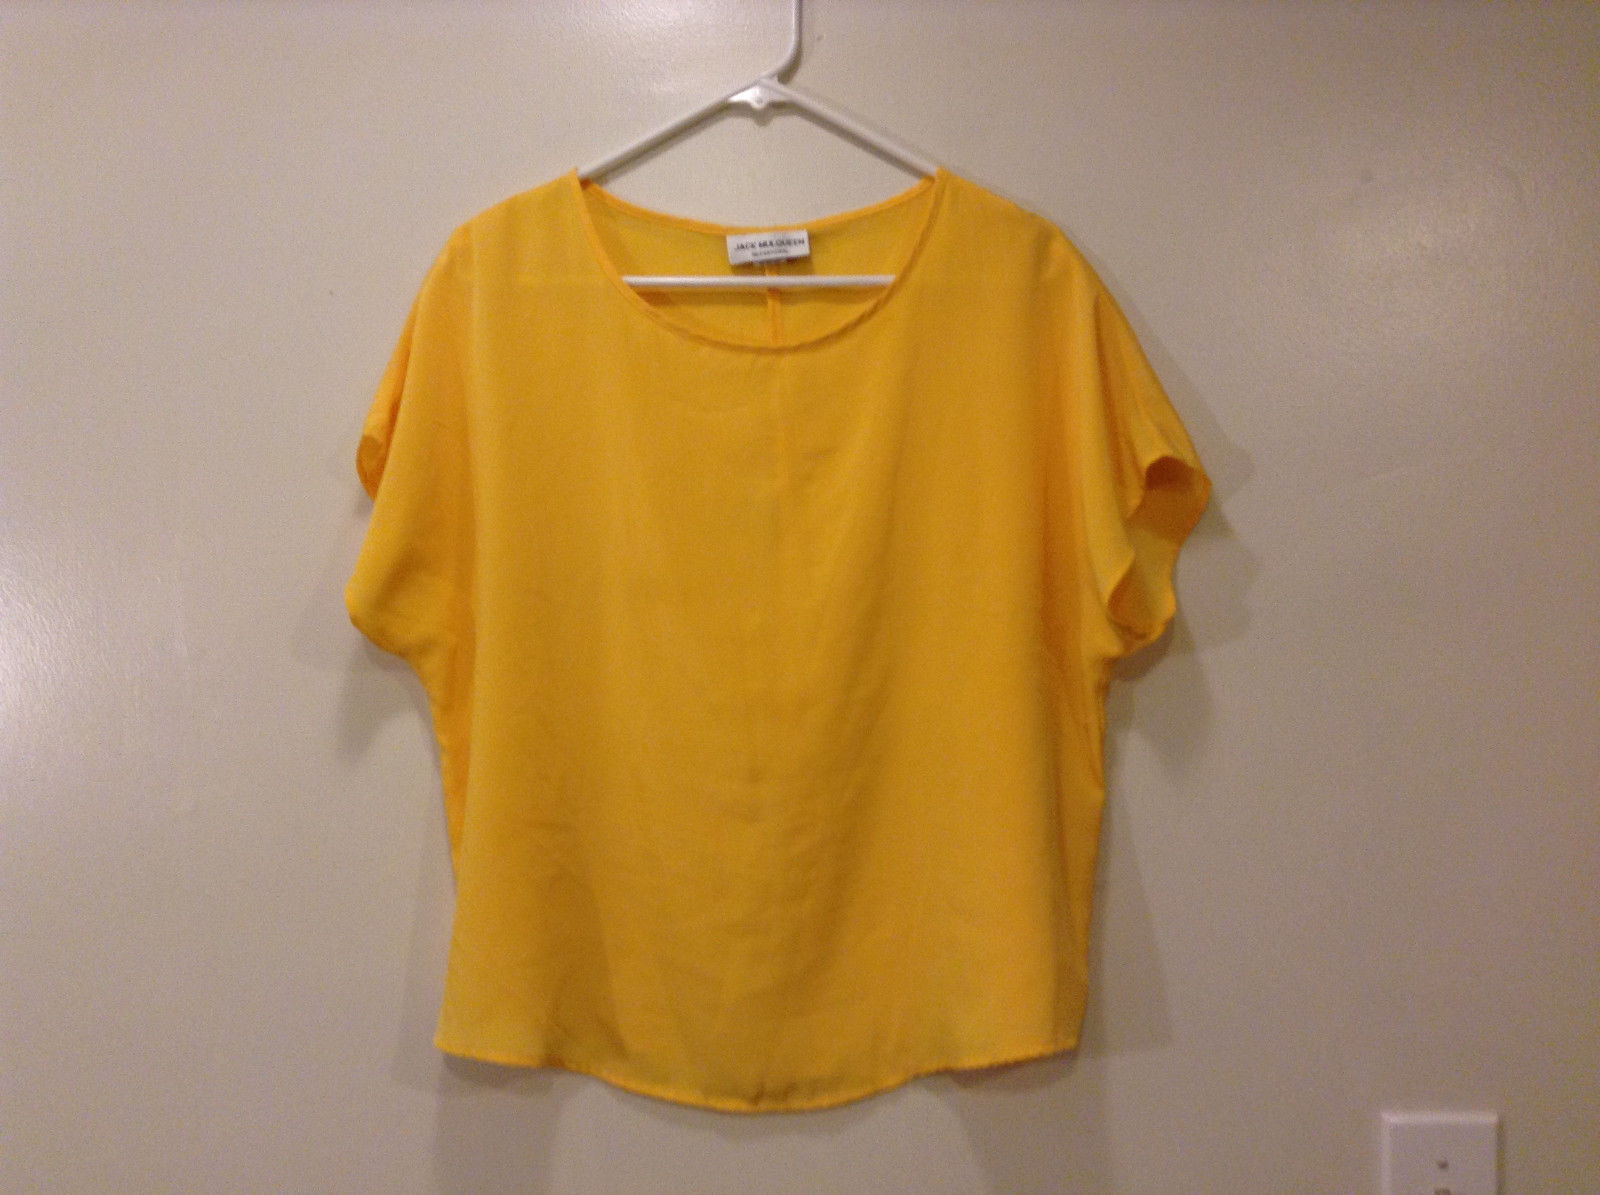 Jack Mulqueen Ladies Yellow Blouse Tee Shirt, Size L 100% polyester